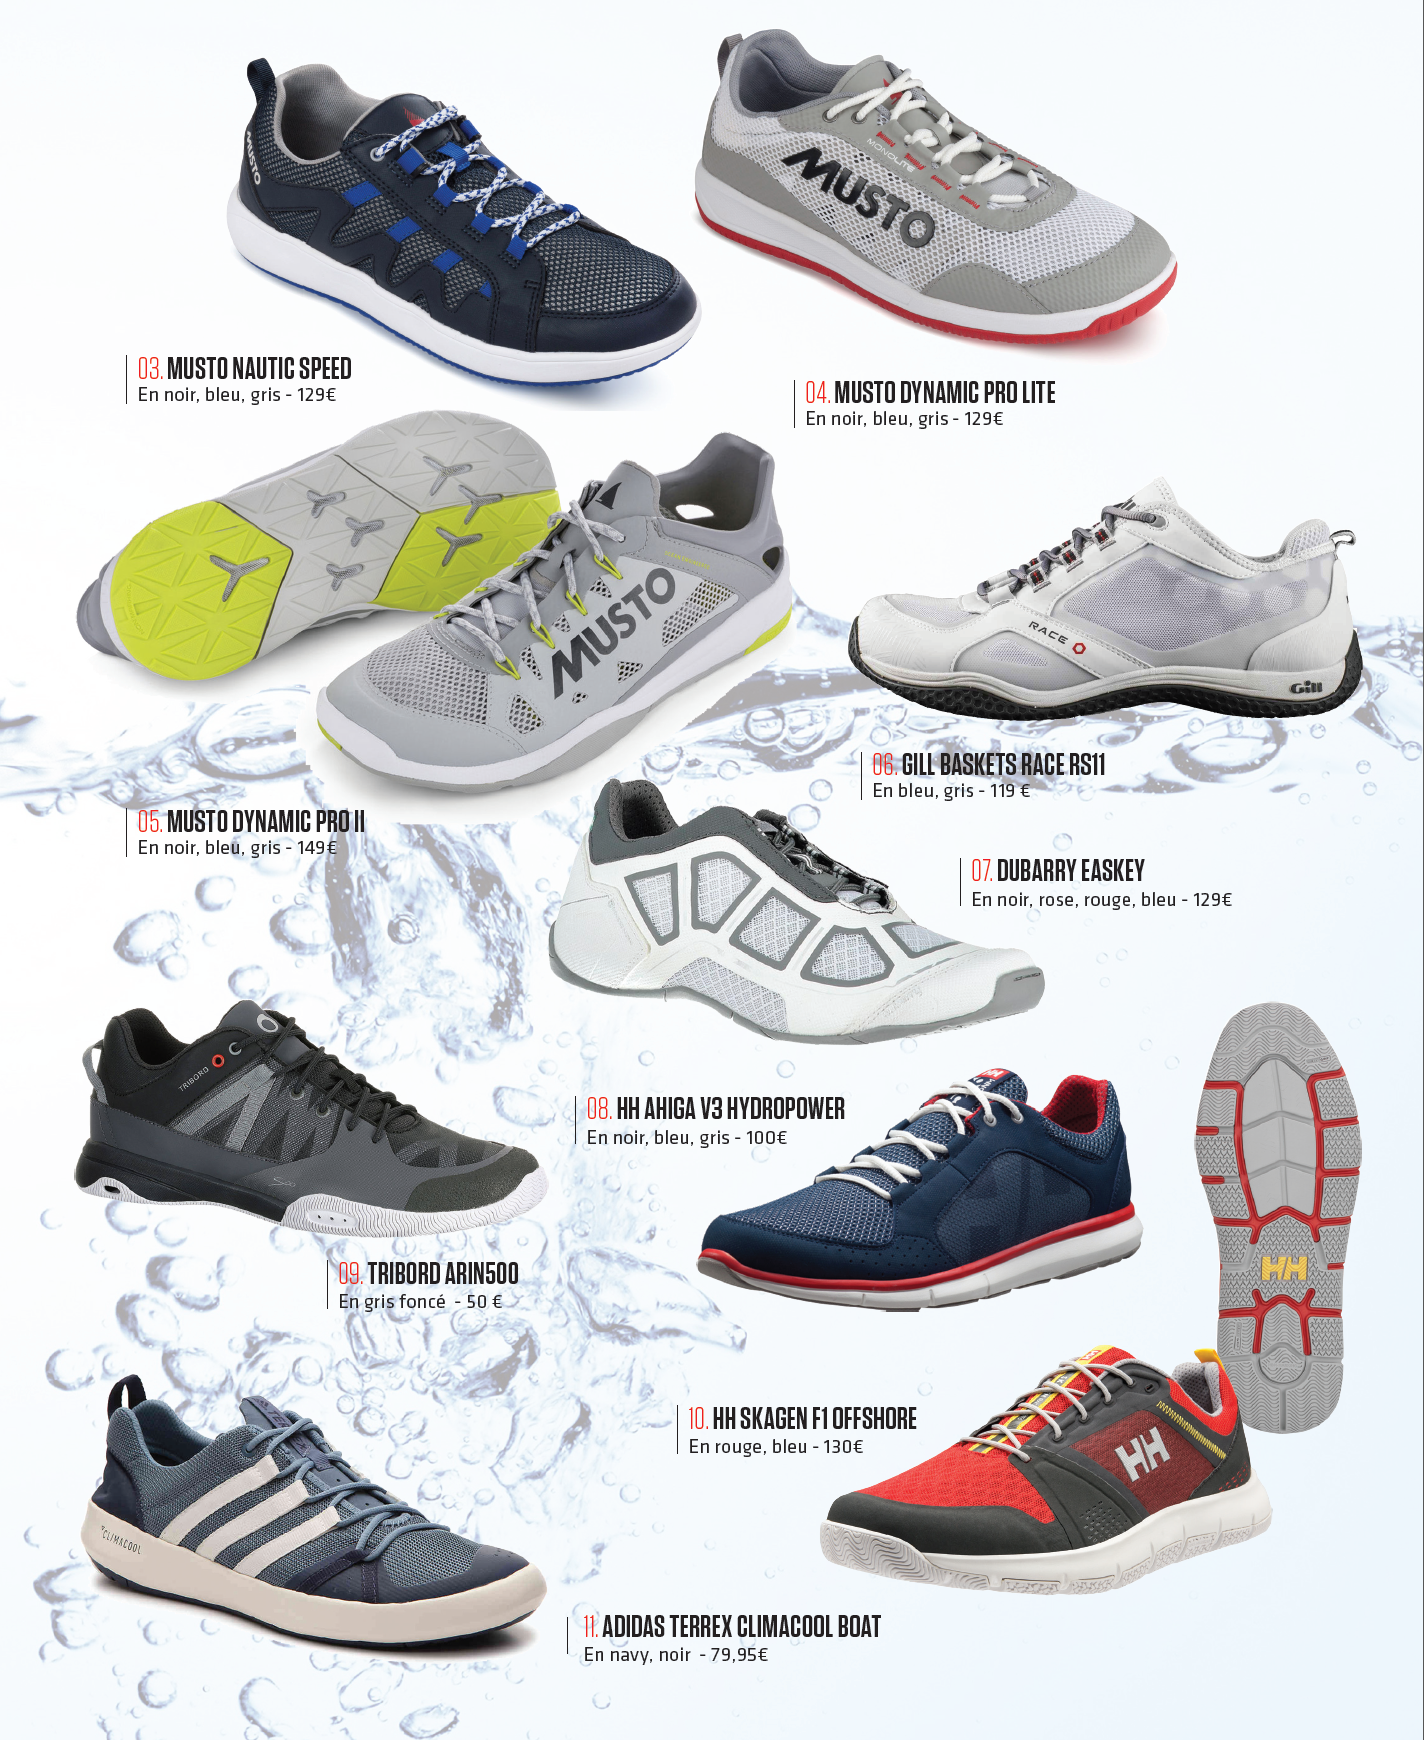 Comparatif Comparatif De Pont De Comparatif De Pont Pont Chaussures Chaussures Comparatif Chaussures Chaussures w8Ok0Pn